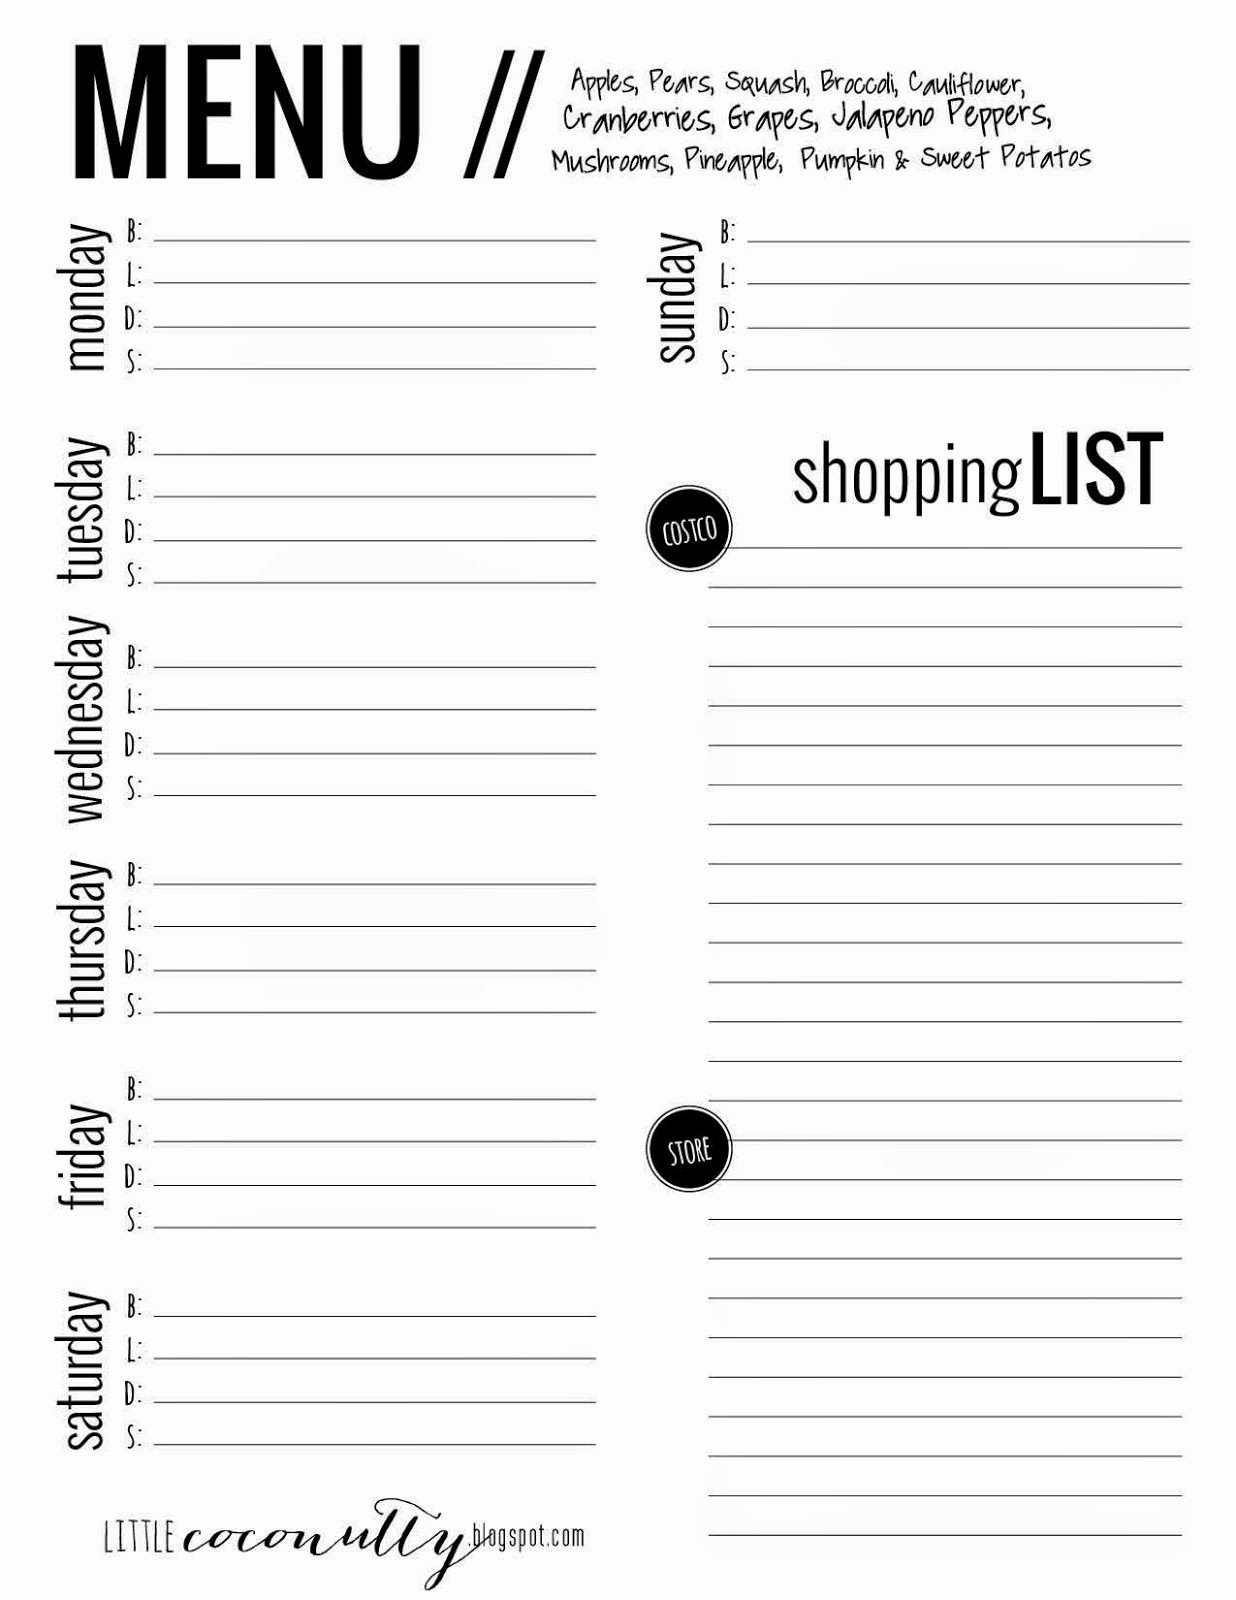 Menu Planner Template Printable New Little Coconutty Free Menu Planner Printable Grocery